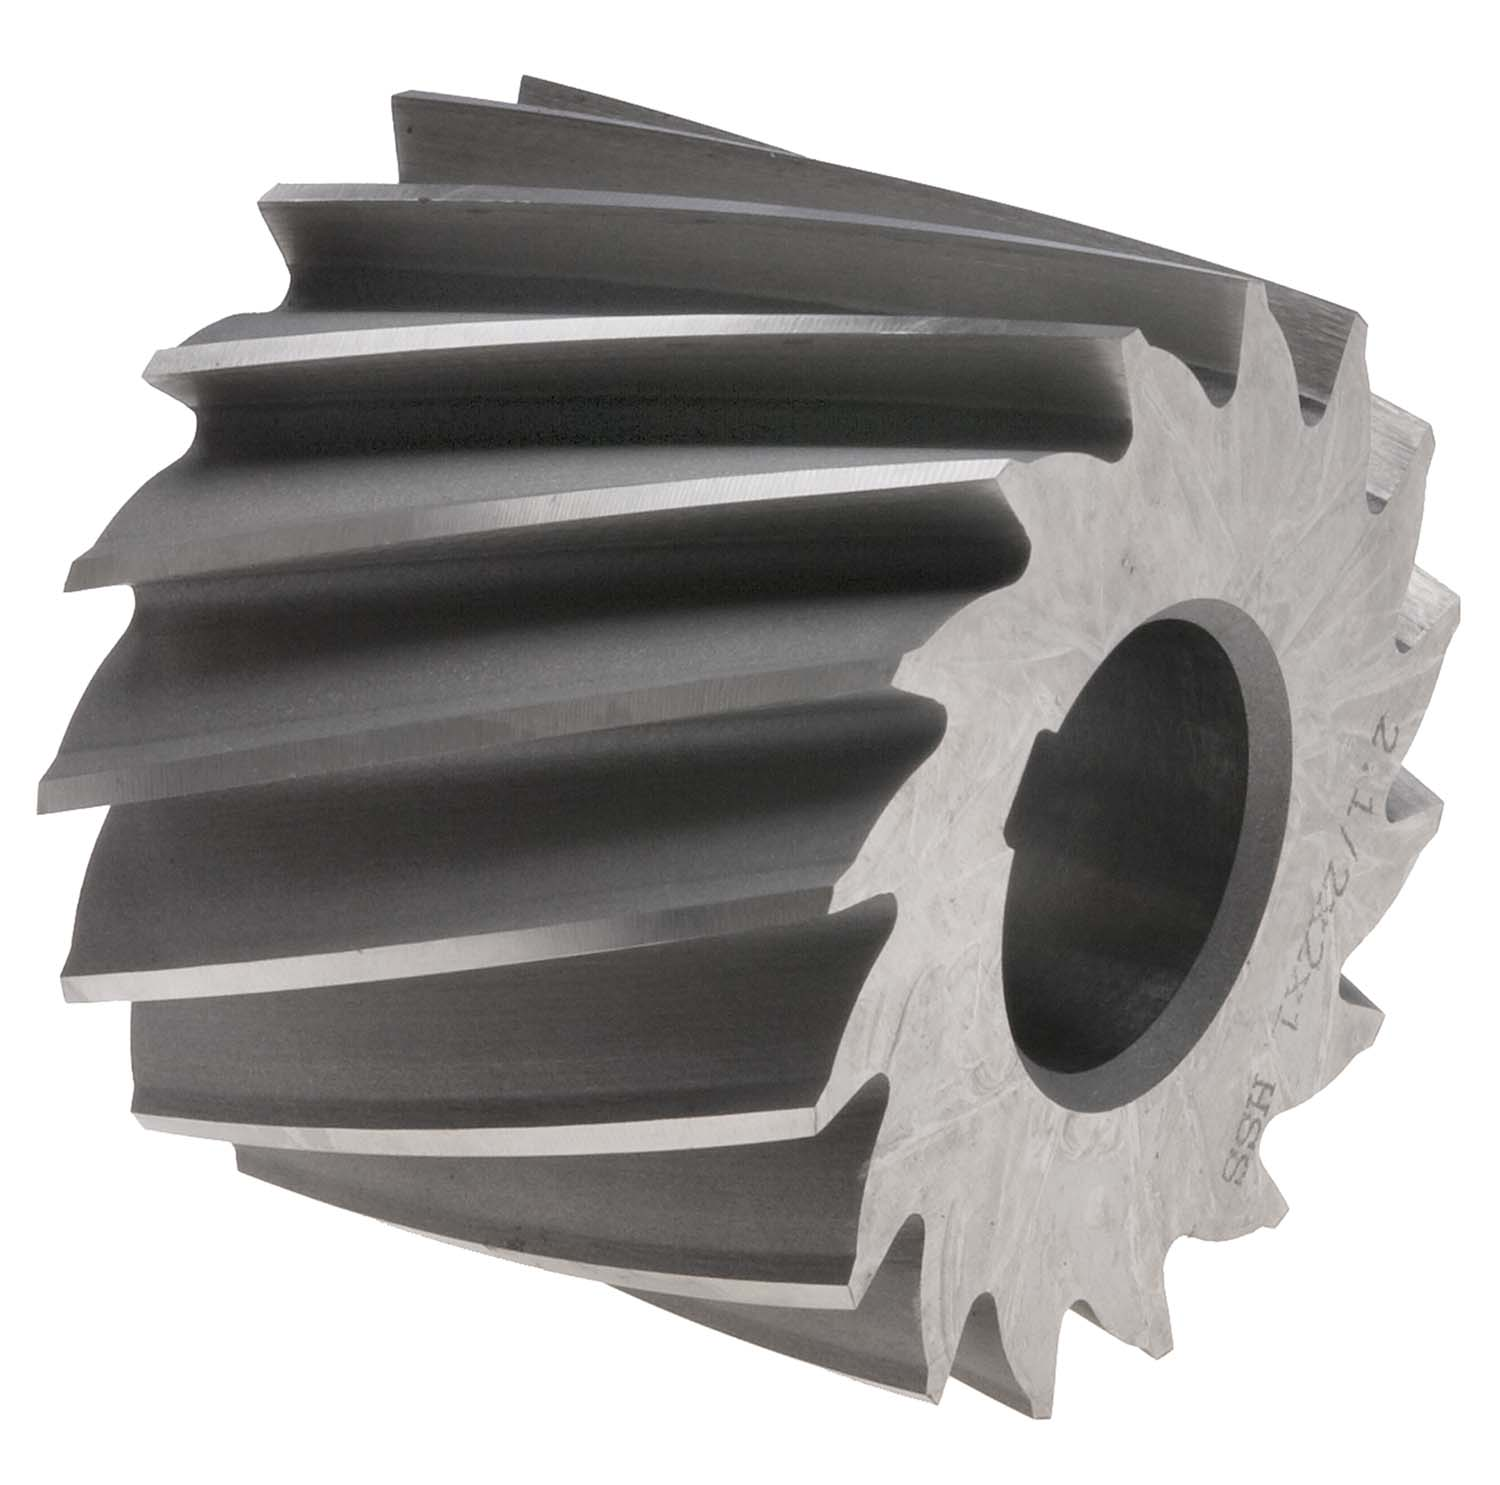 3 X 3/8 X 1 Plain Milling Cutter, High Speed Steel